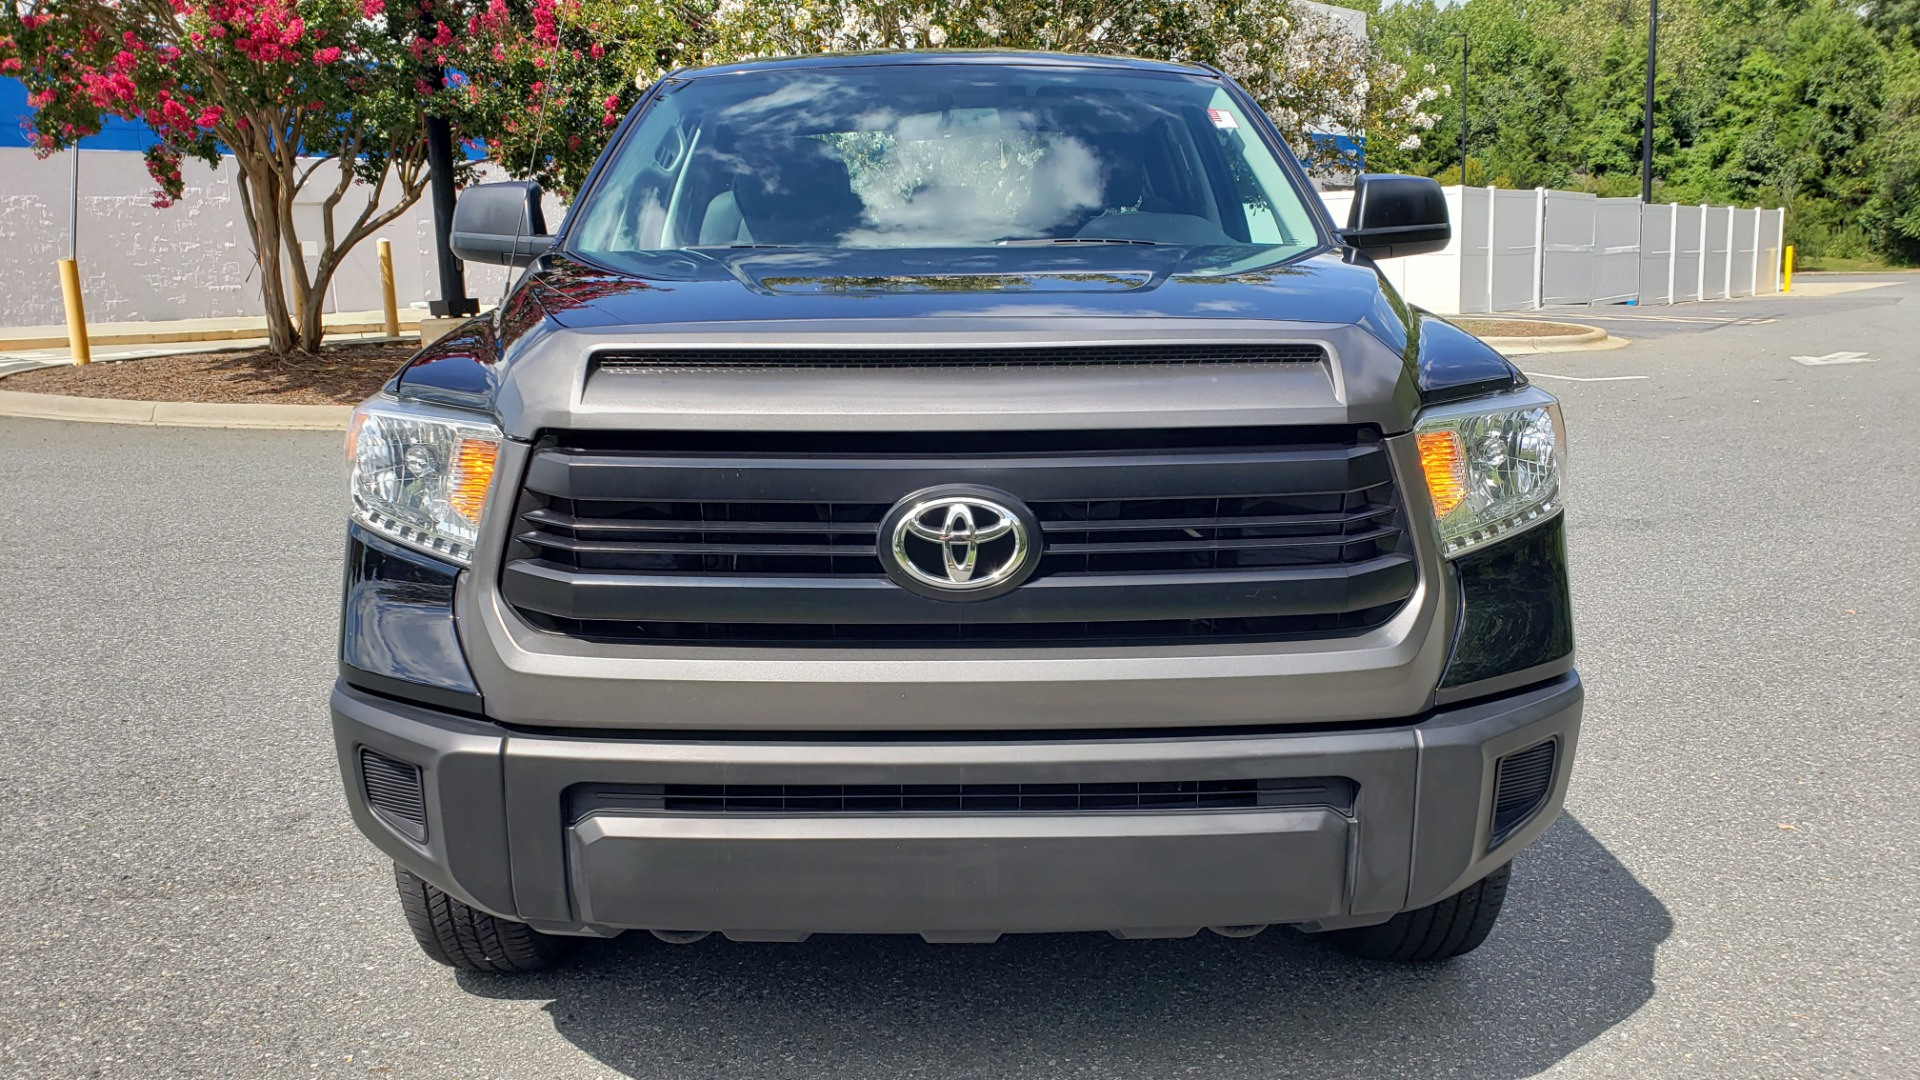 Used 2017 Toyota TUNDRA 4WD SR DOUBLECAB / 4WD / 6.5' BED / V8 / AUTO / REARVIEW for sale Sold at Formula Imports in Charlotte NC 28227 14